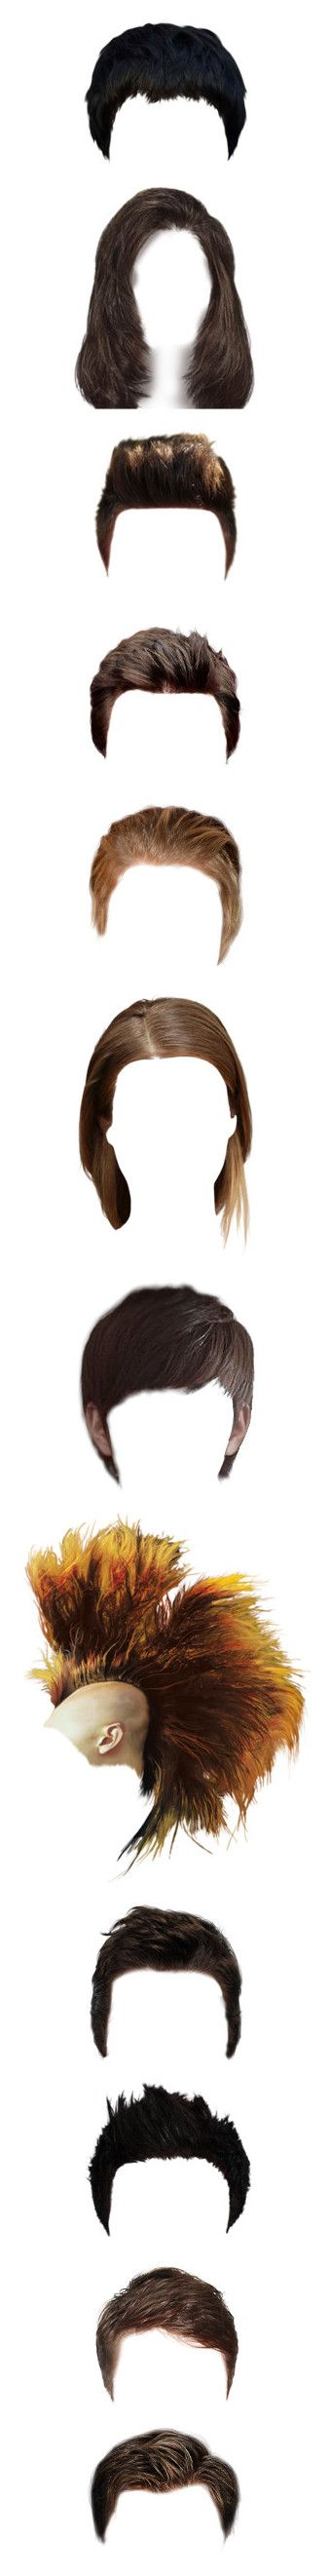 """""""ART // Hair 🚹"""" by beneath-the-mystic-moon ❤ liked on Polyvore featuring hair, wigs, boy hair, dolls, heads, steampunk, doll hair, men, beauty products and haircare"""